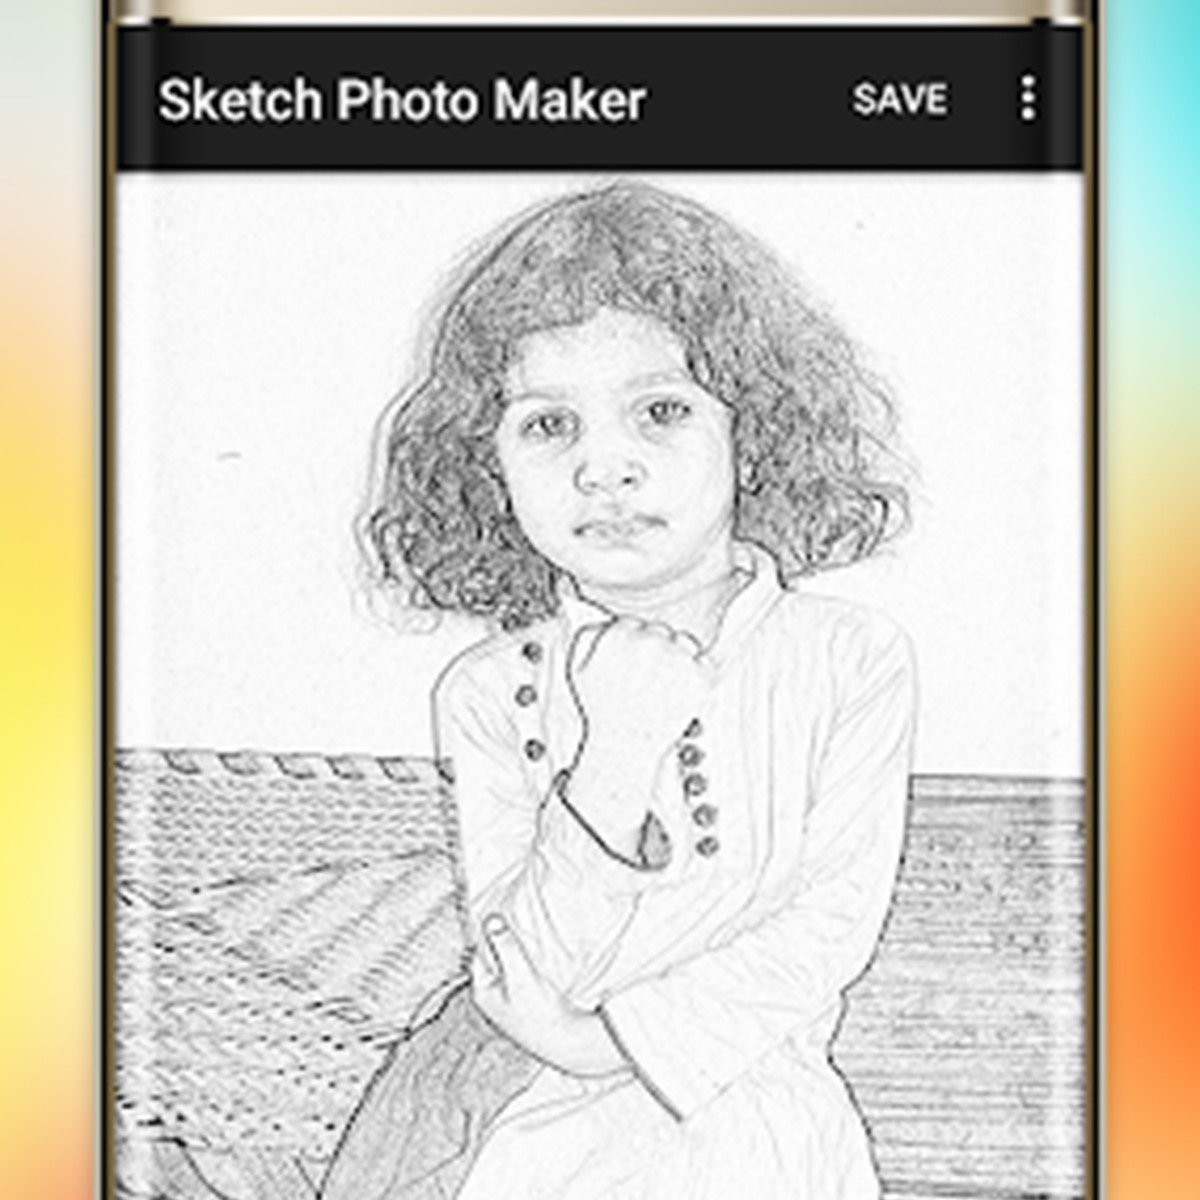 Pencil sketch alternatives and similar apps alternativeto net